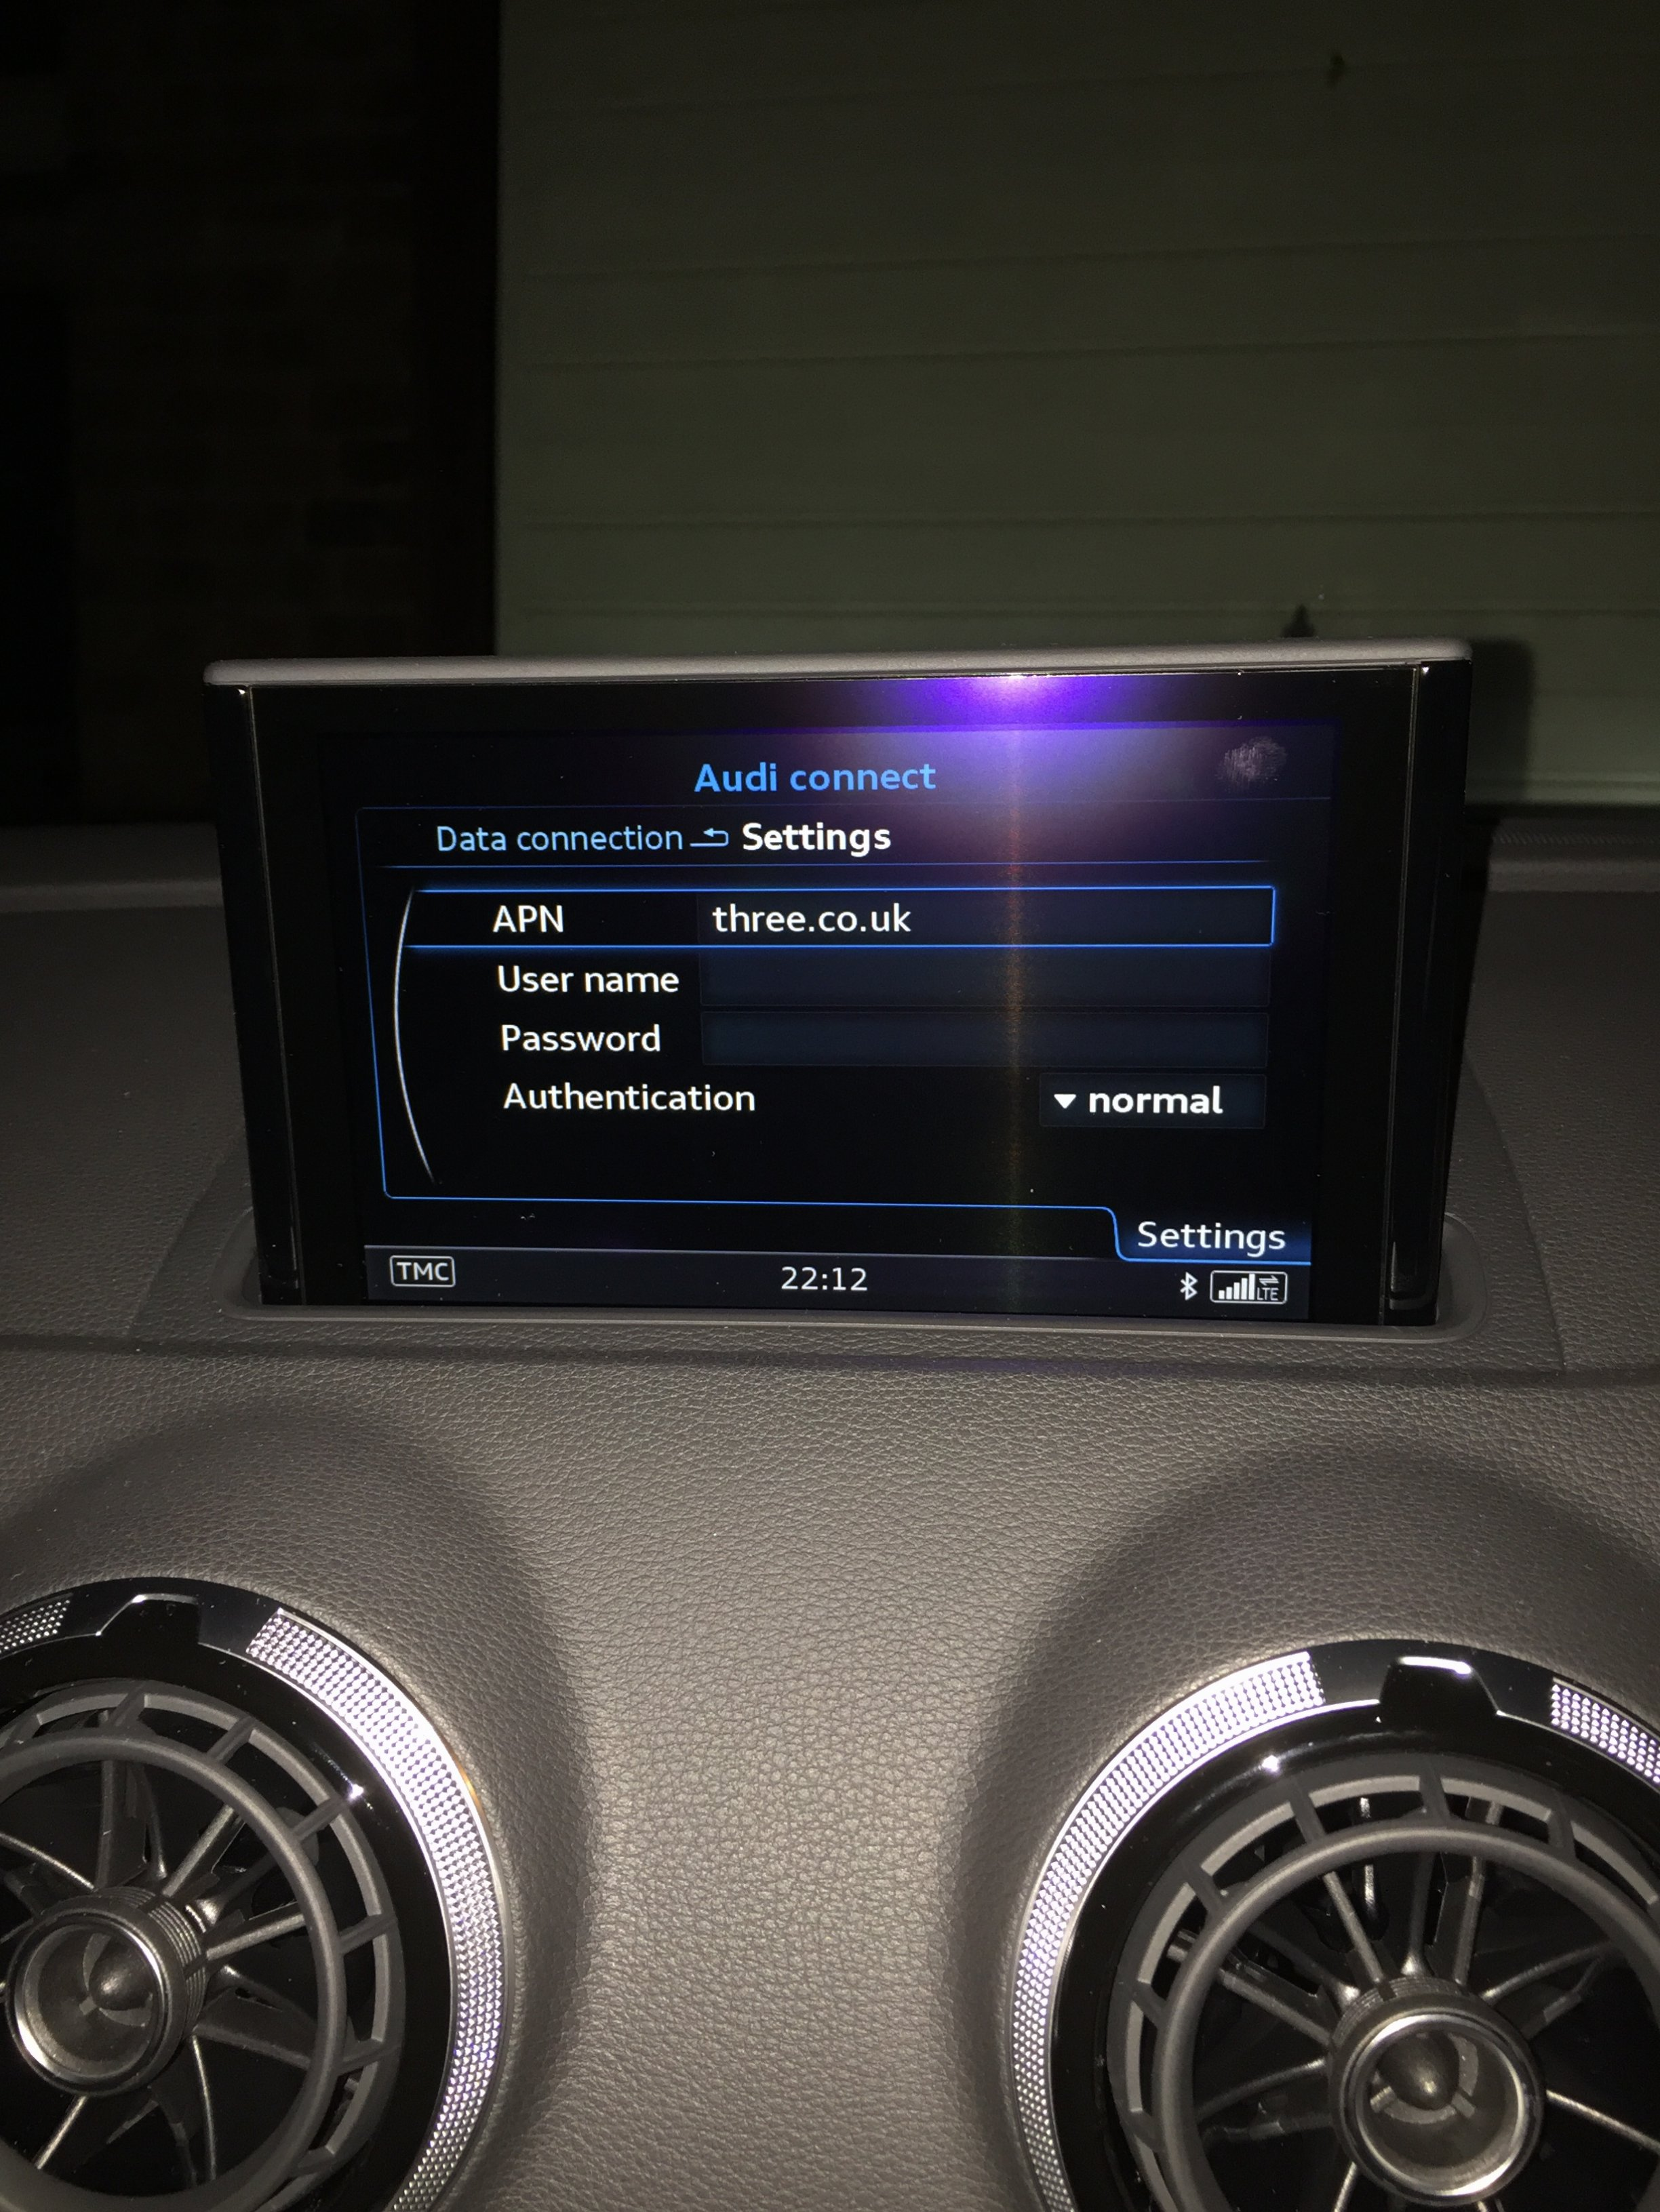 Please Help Im At Breaking Point Audi Connect Issue With Sim - Audi connection